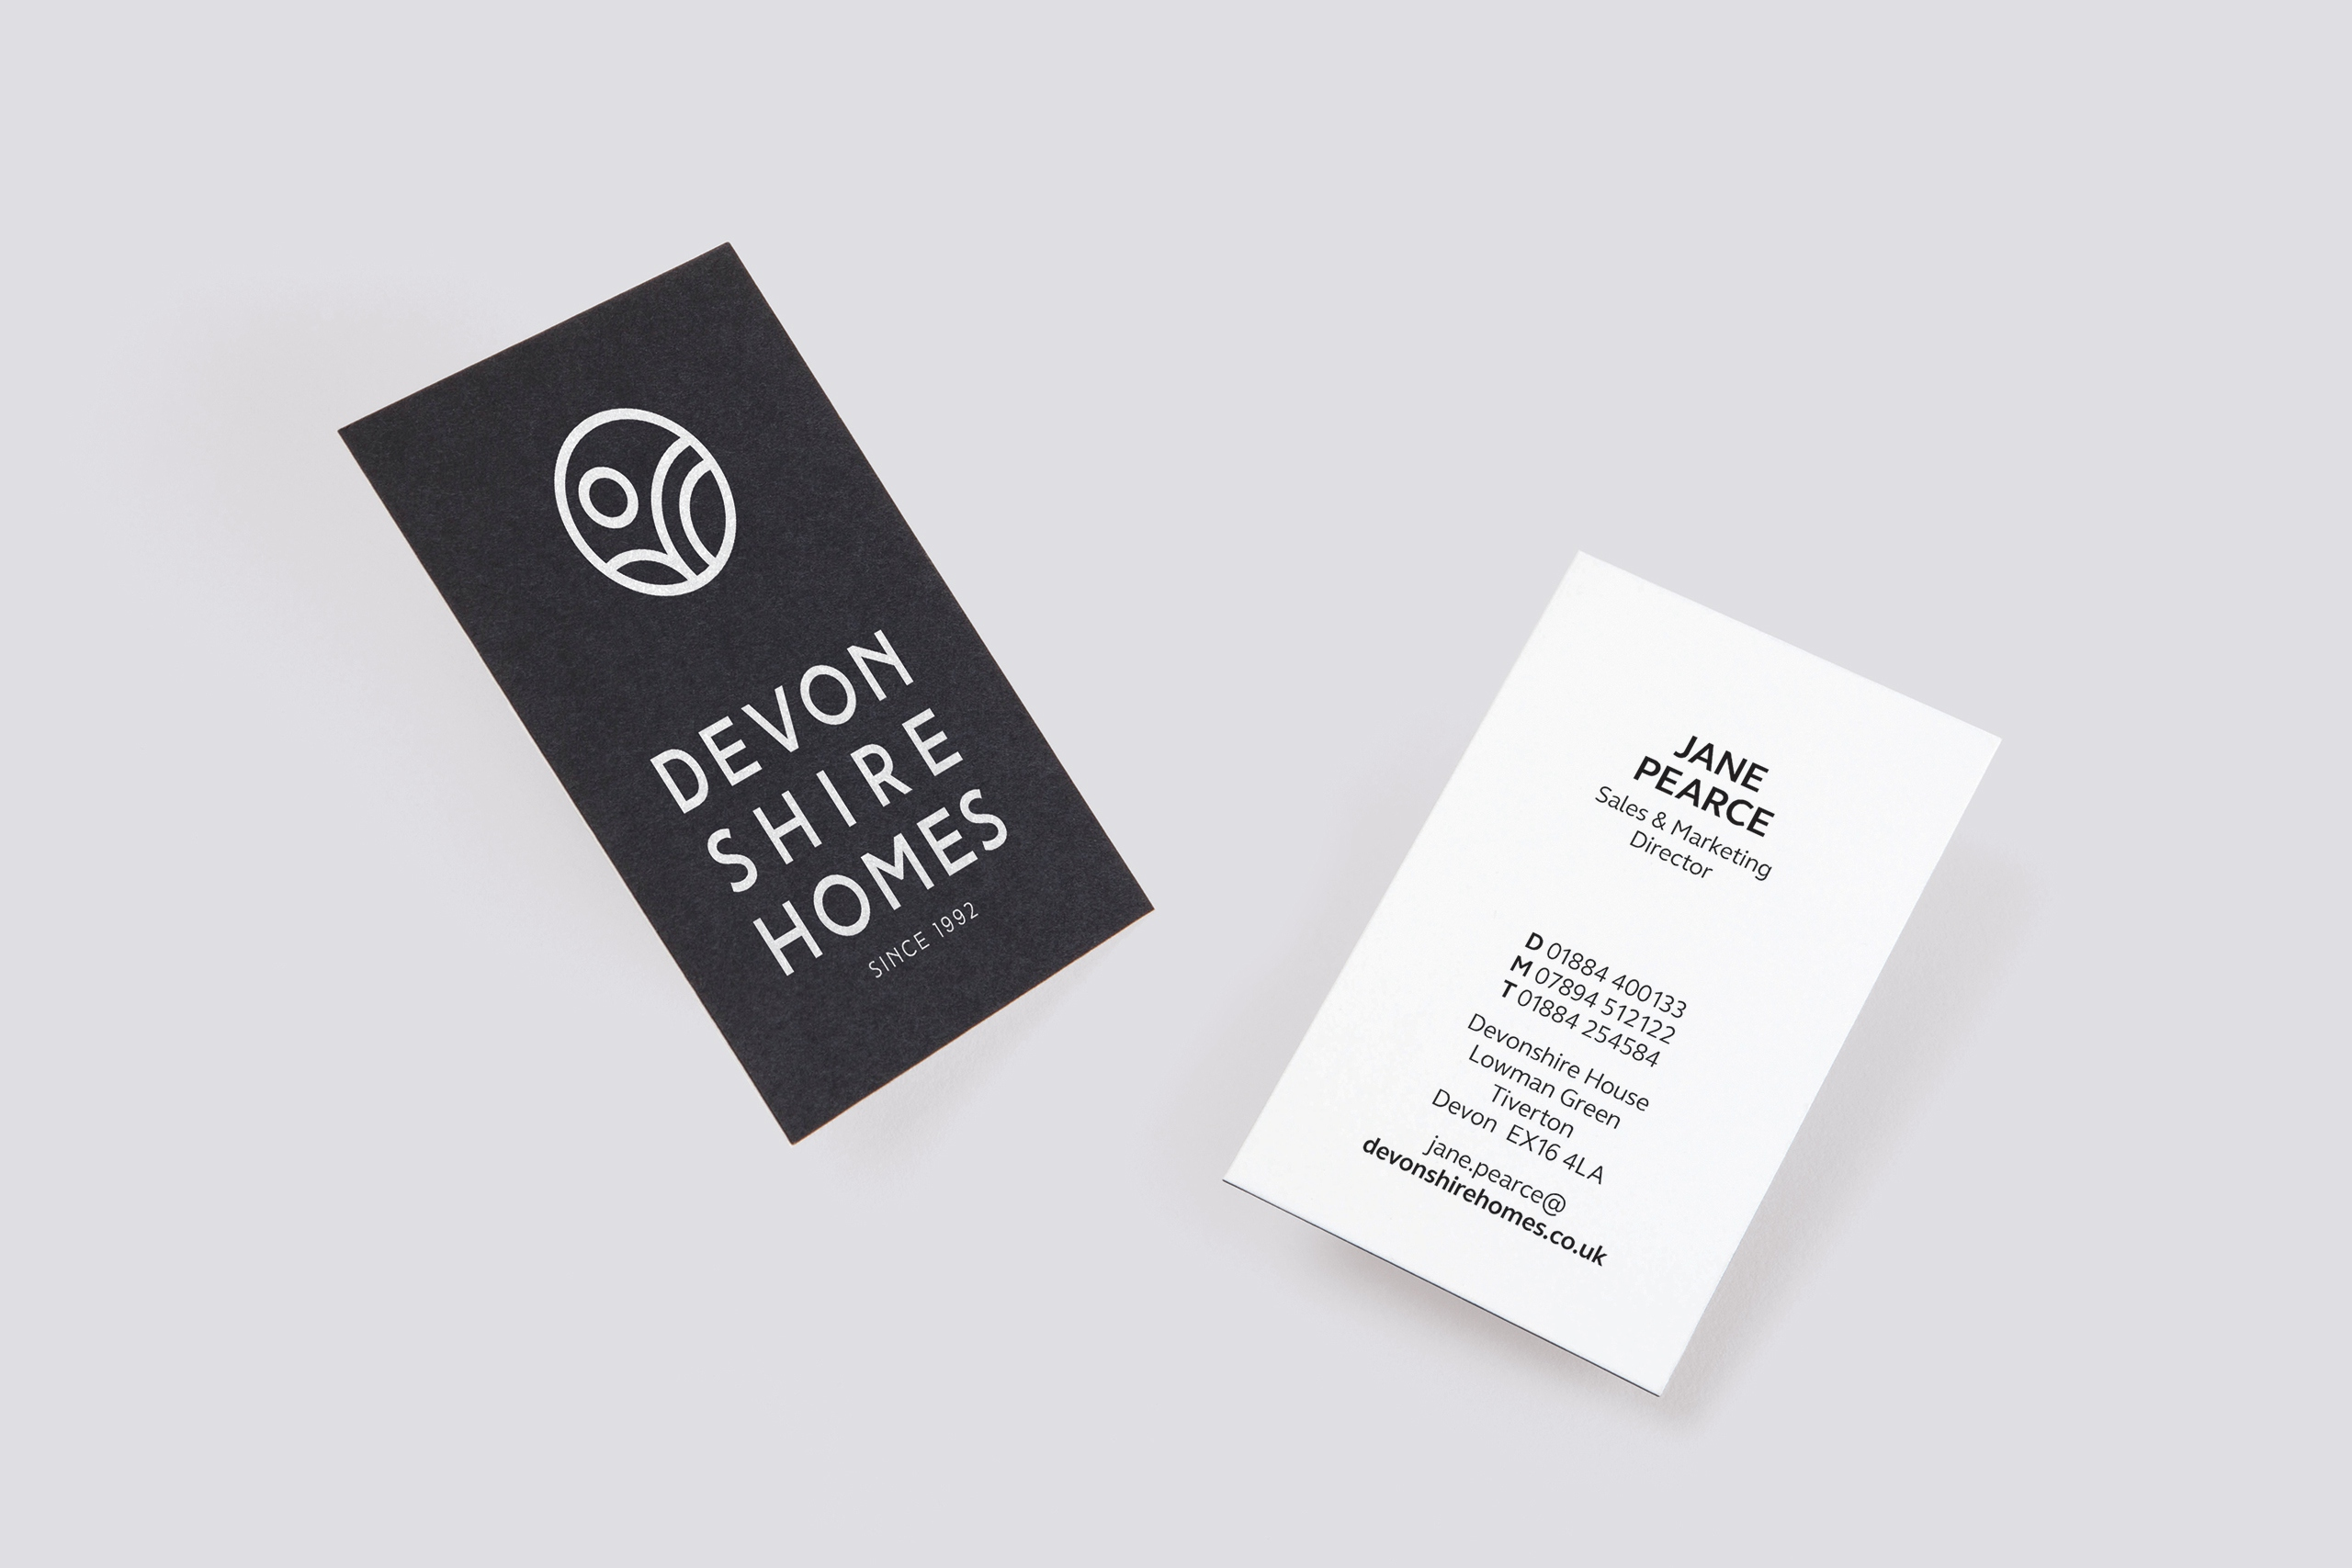 Devonshire Homes - Brand development